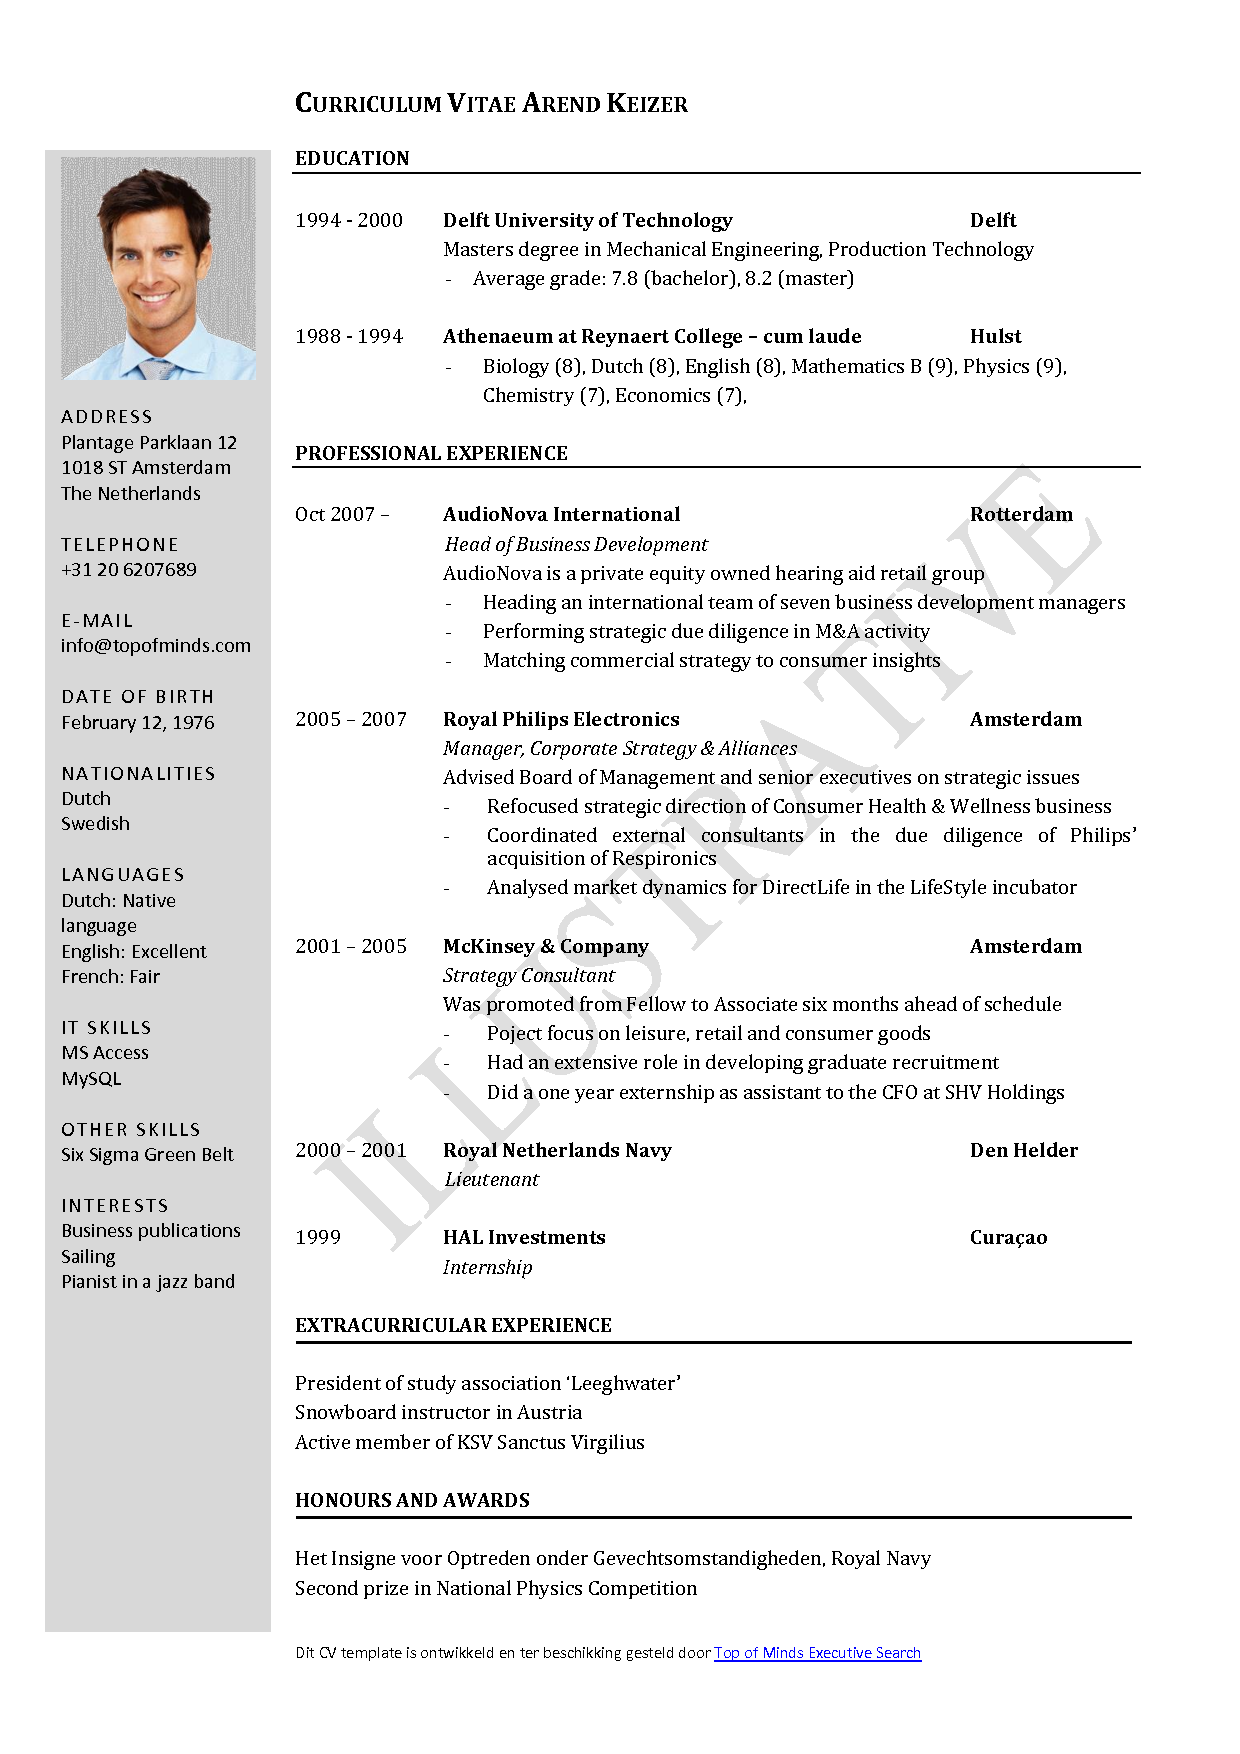 resume Download Resume Templates free curriculum vitae template word download cv when i template